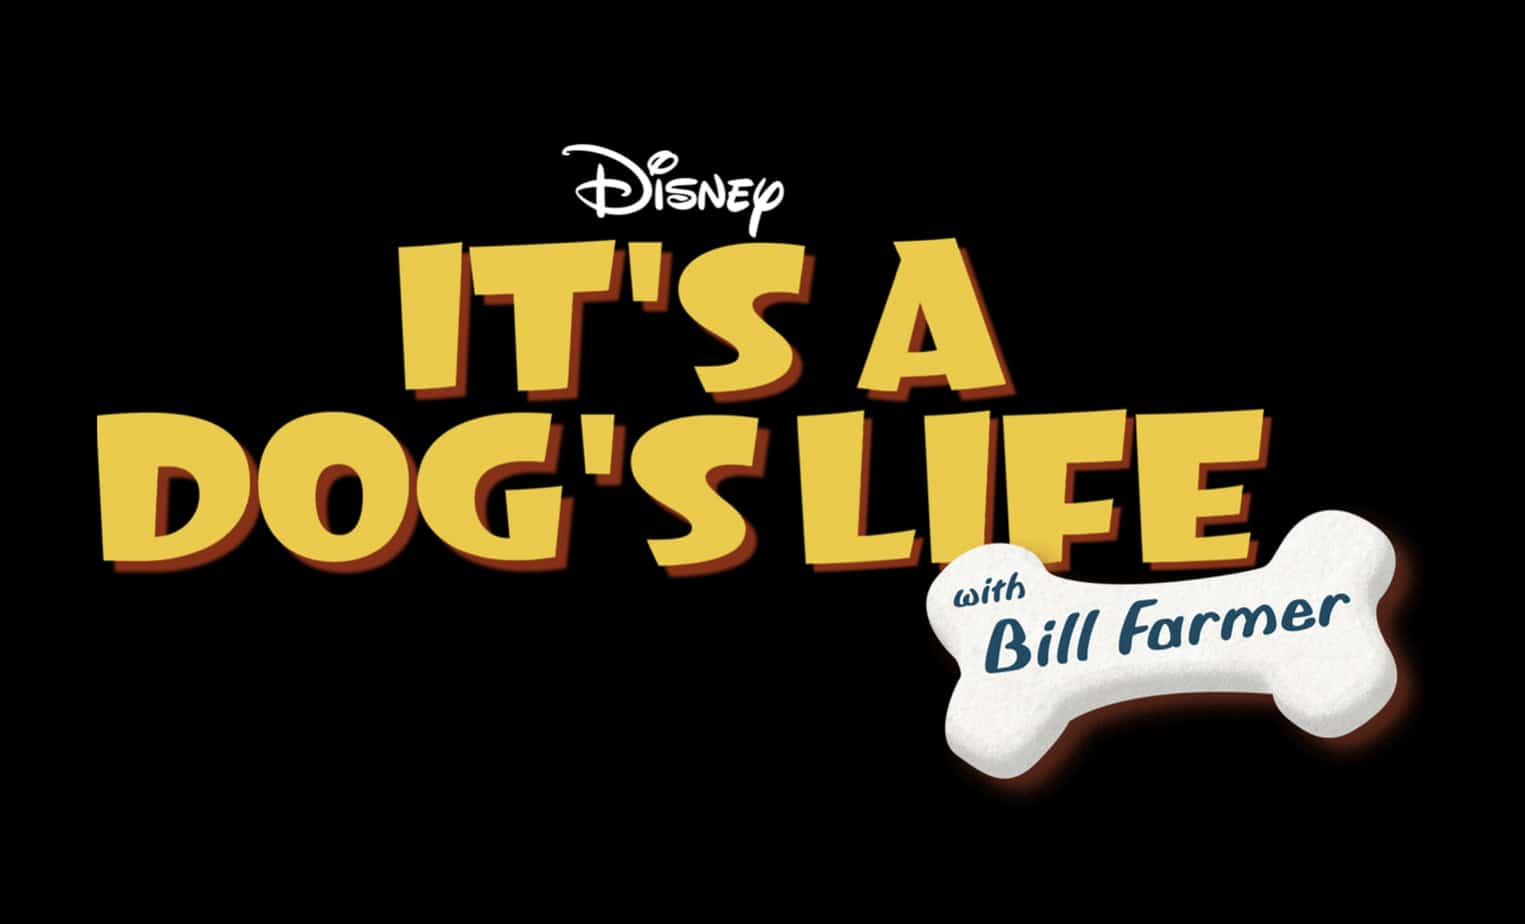 What's Coming to Disney Plus in July 2020 8